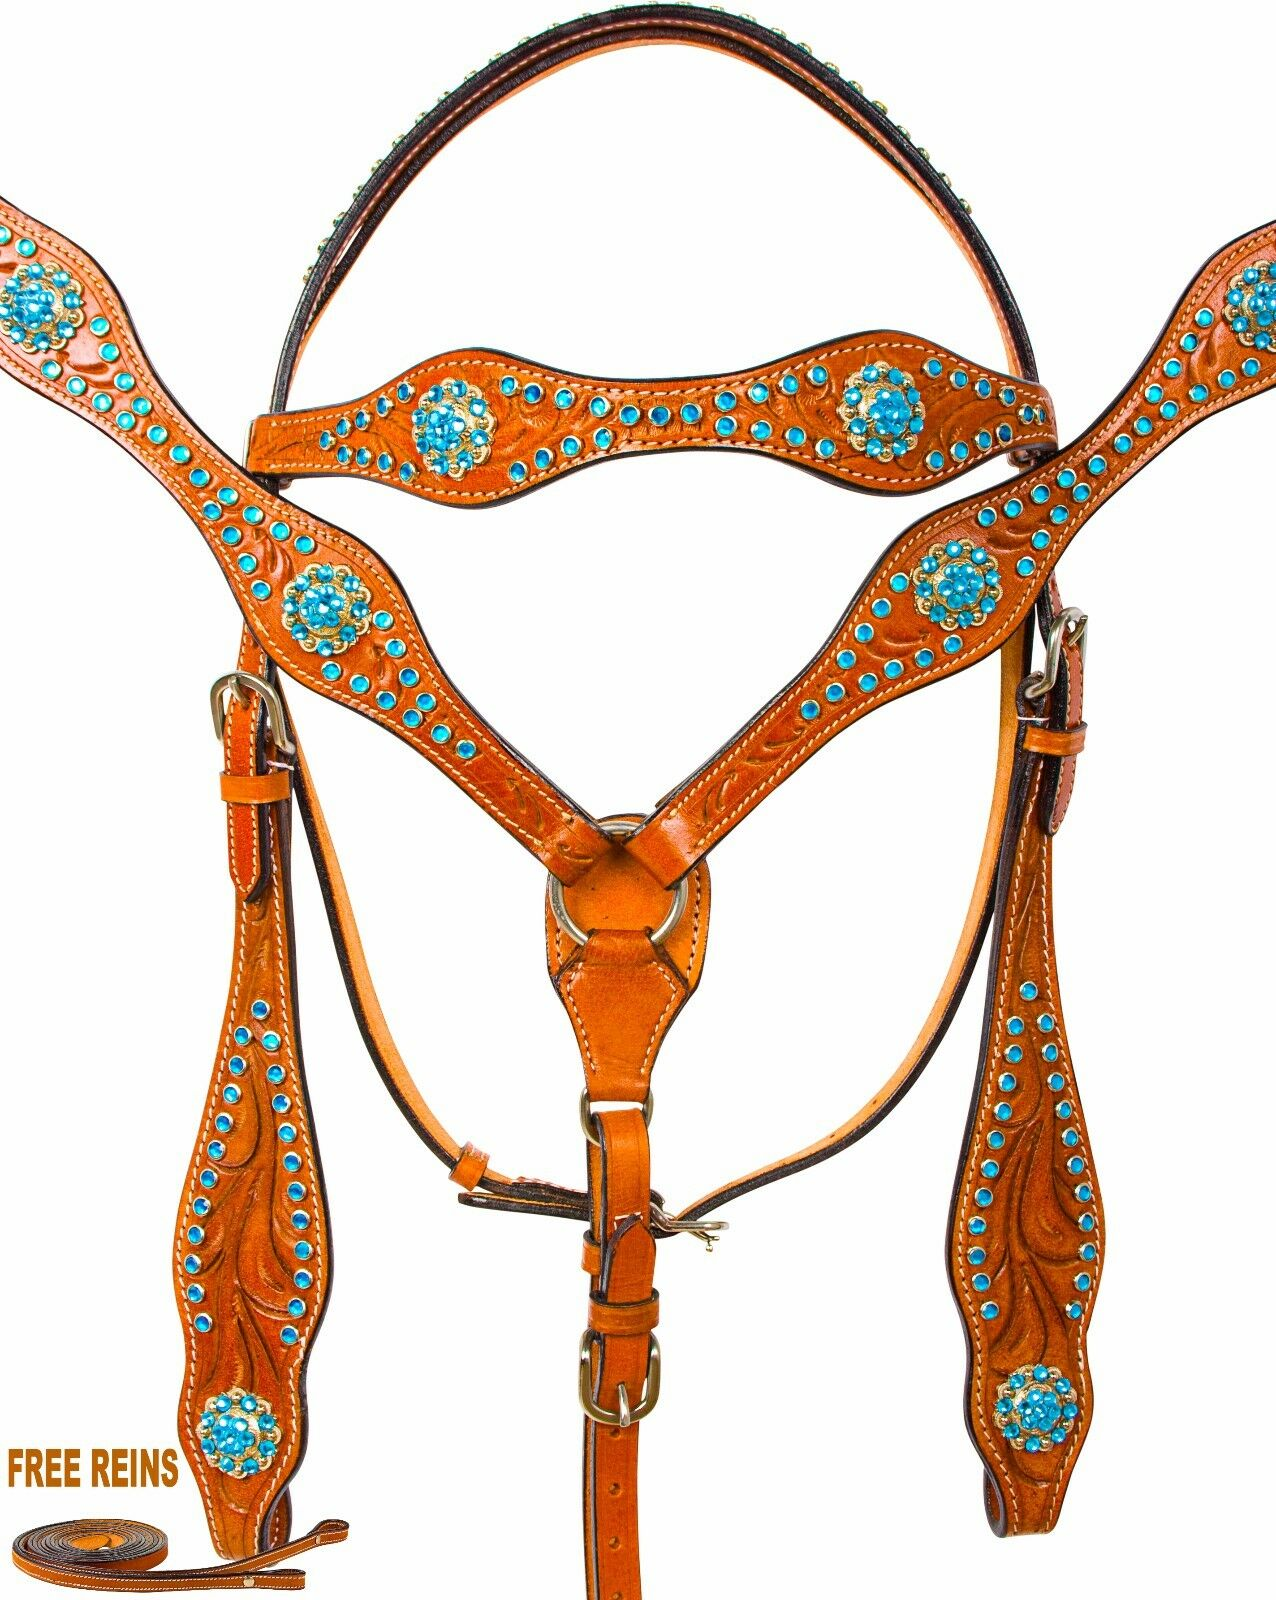 USED LEATHER WESTERN HEADSTALL BRIDLE BREAST COLLAR TRAIL SHOW REINS TURQUOISE